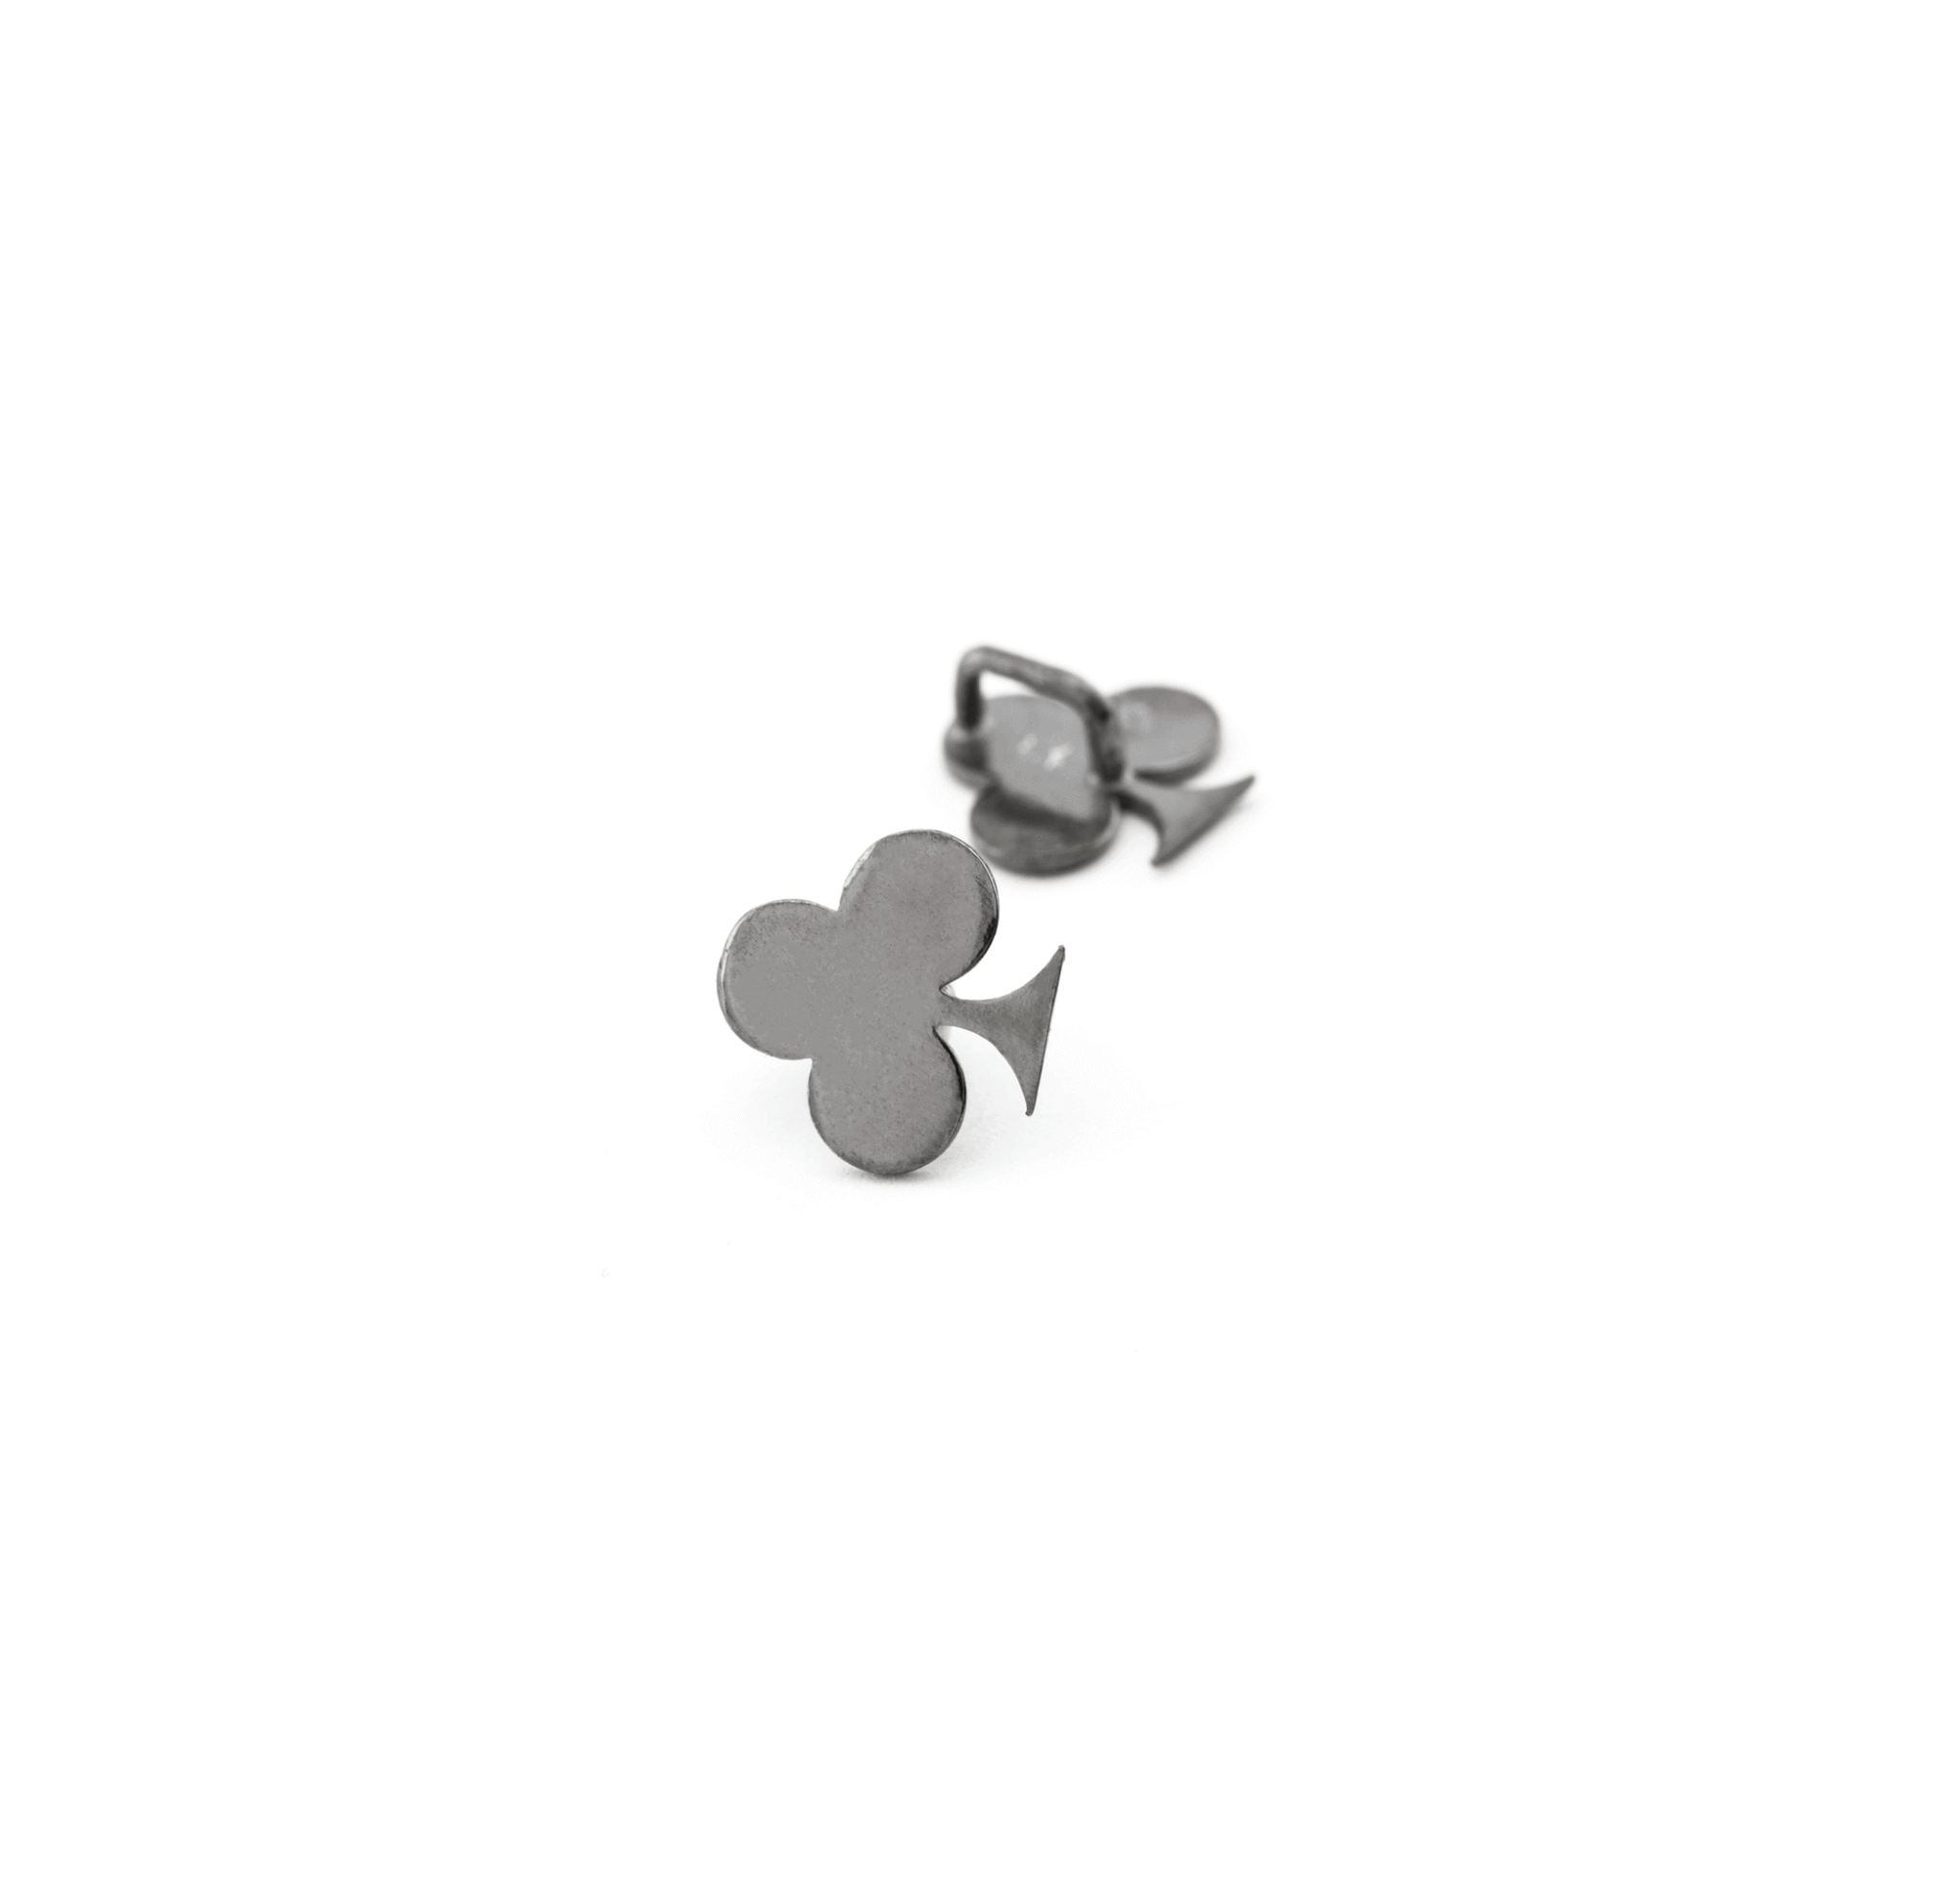 925° SILVER CLOVER RUTHENIUM PLATED 9mm